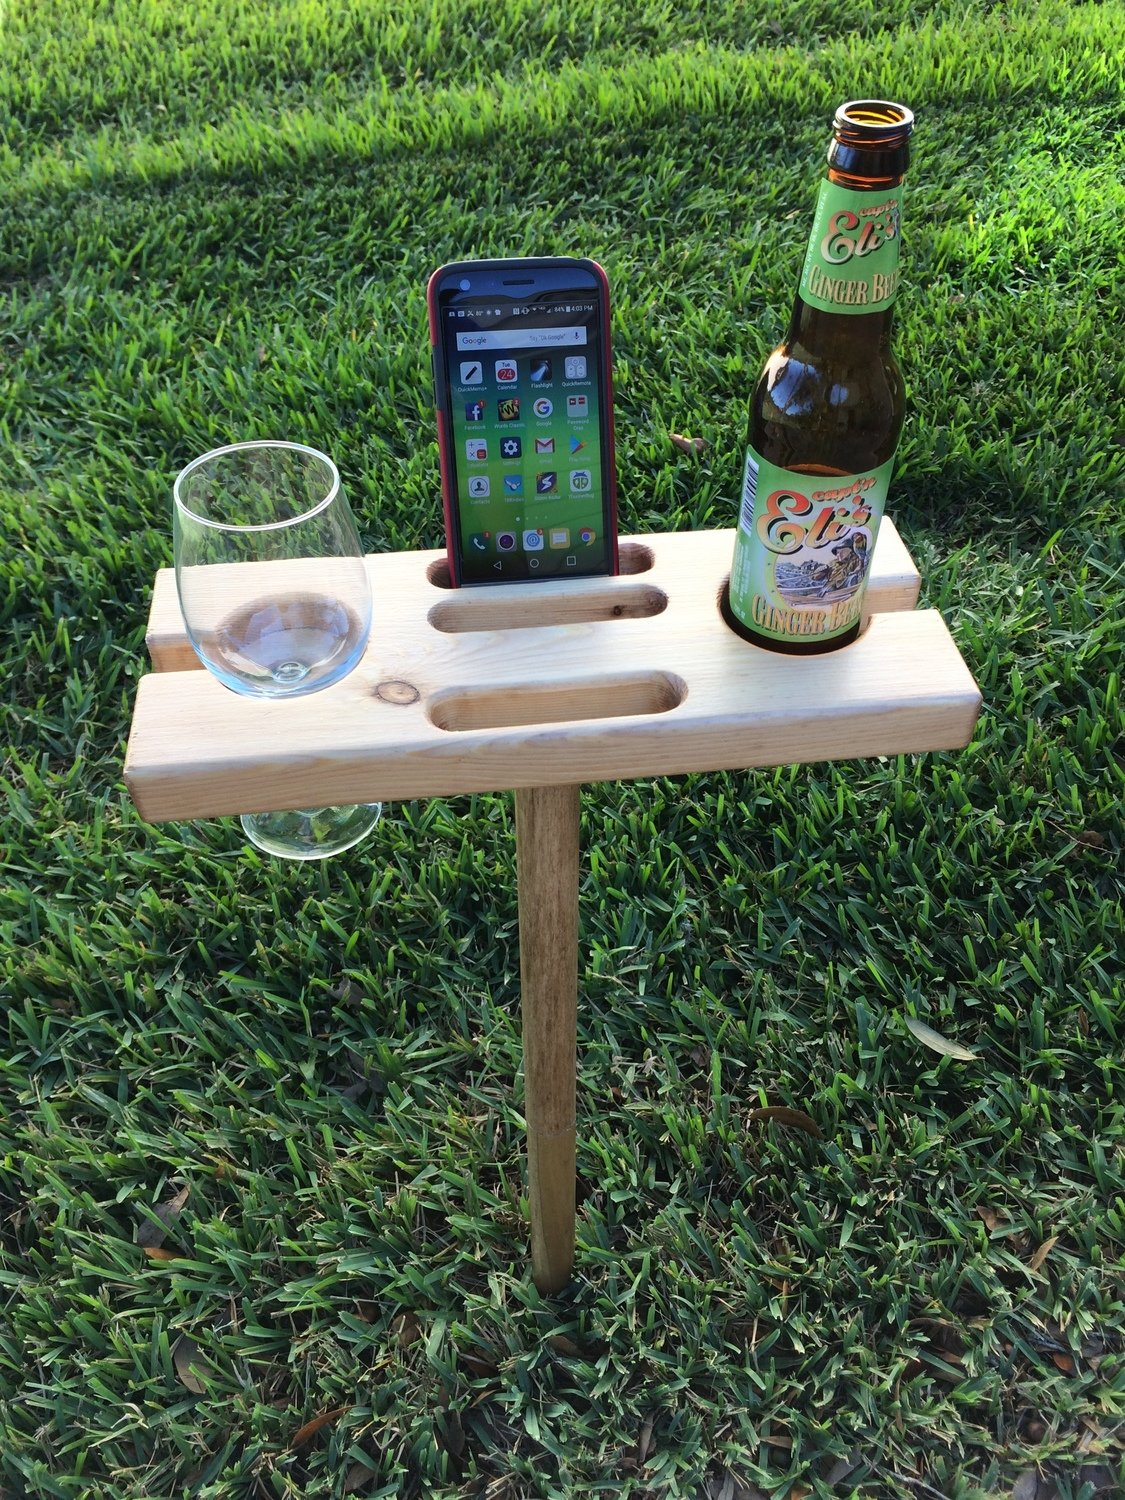 Outdoor Wine Glass Holder Wcarry Case